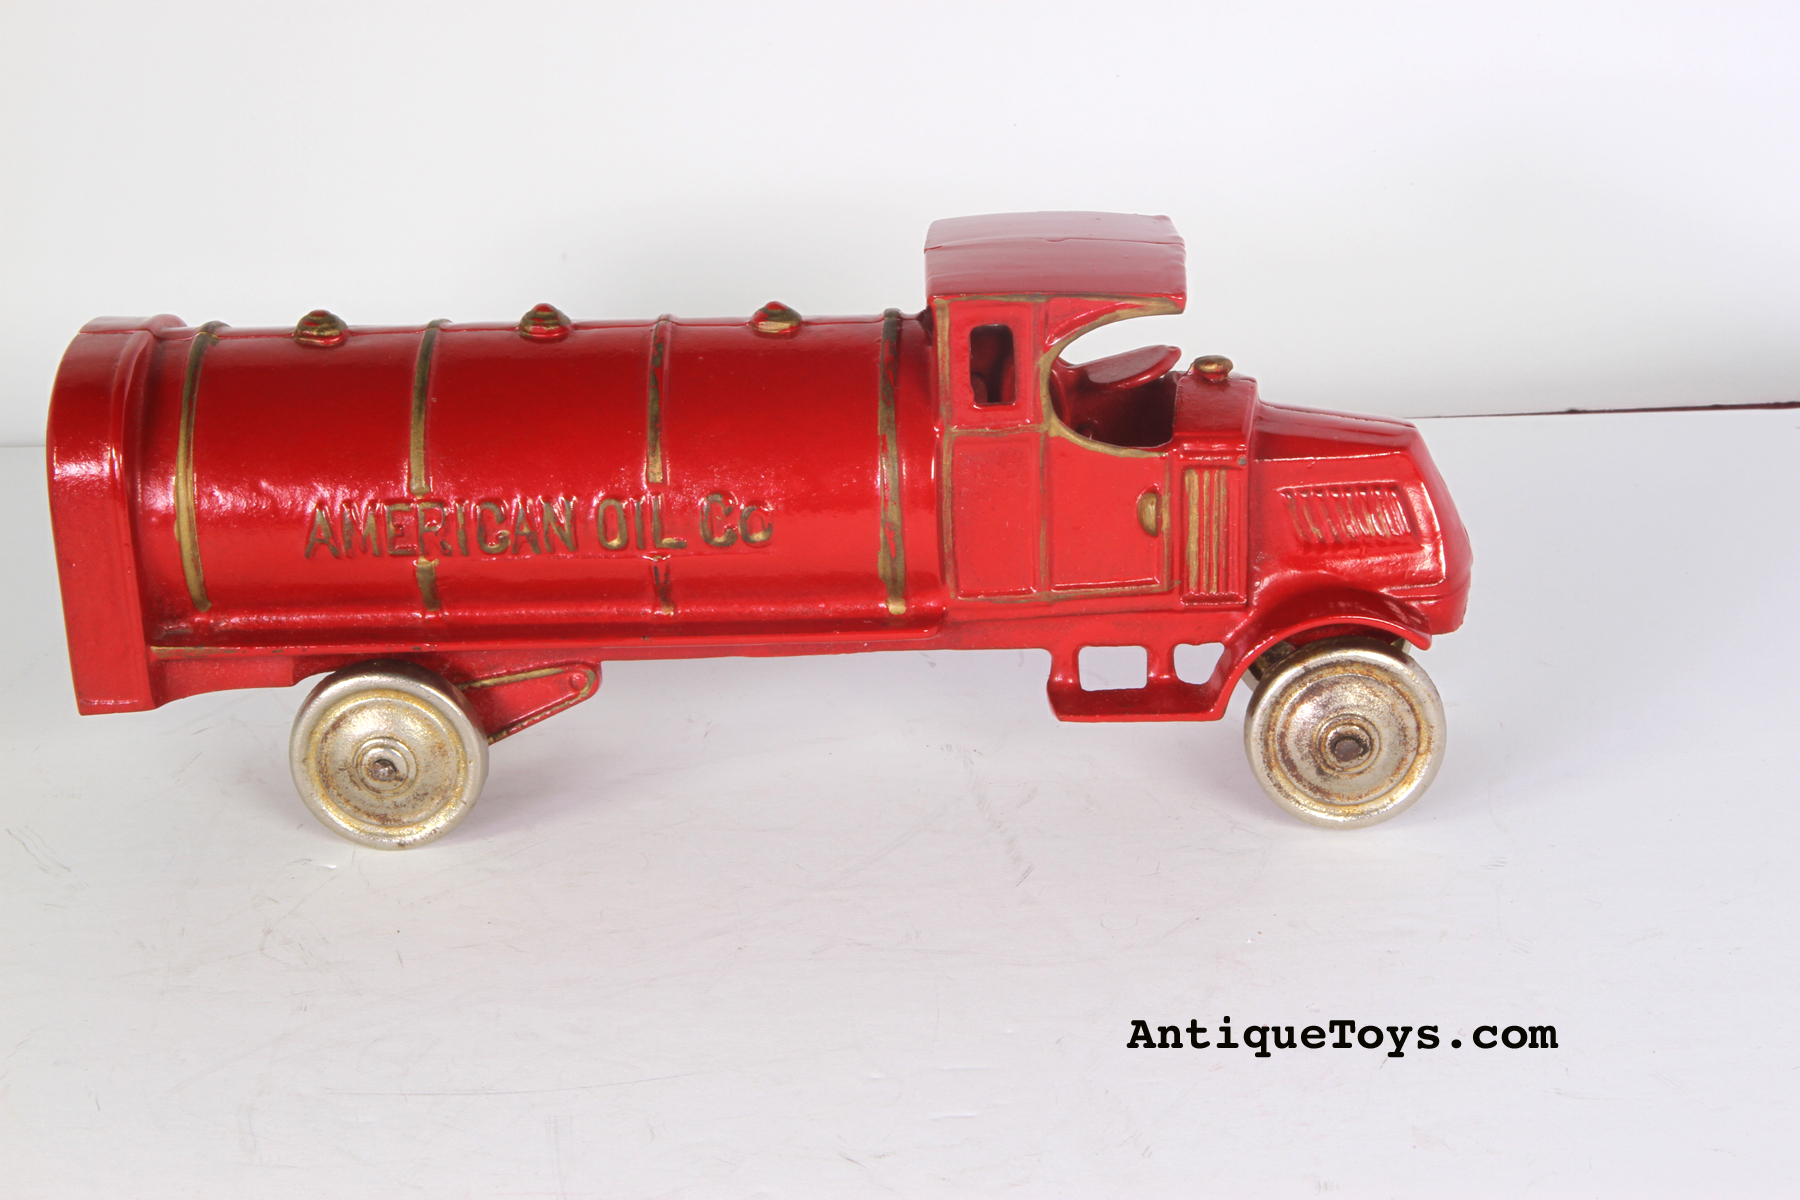 American Oil Cast Iron toy by Dent Manufacturing.